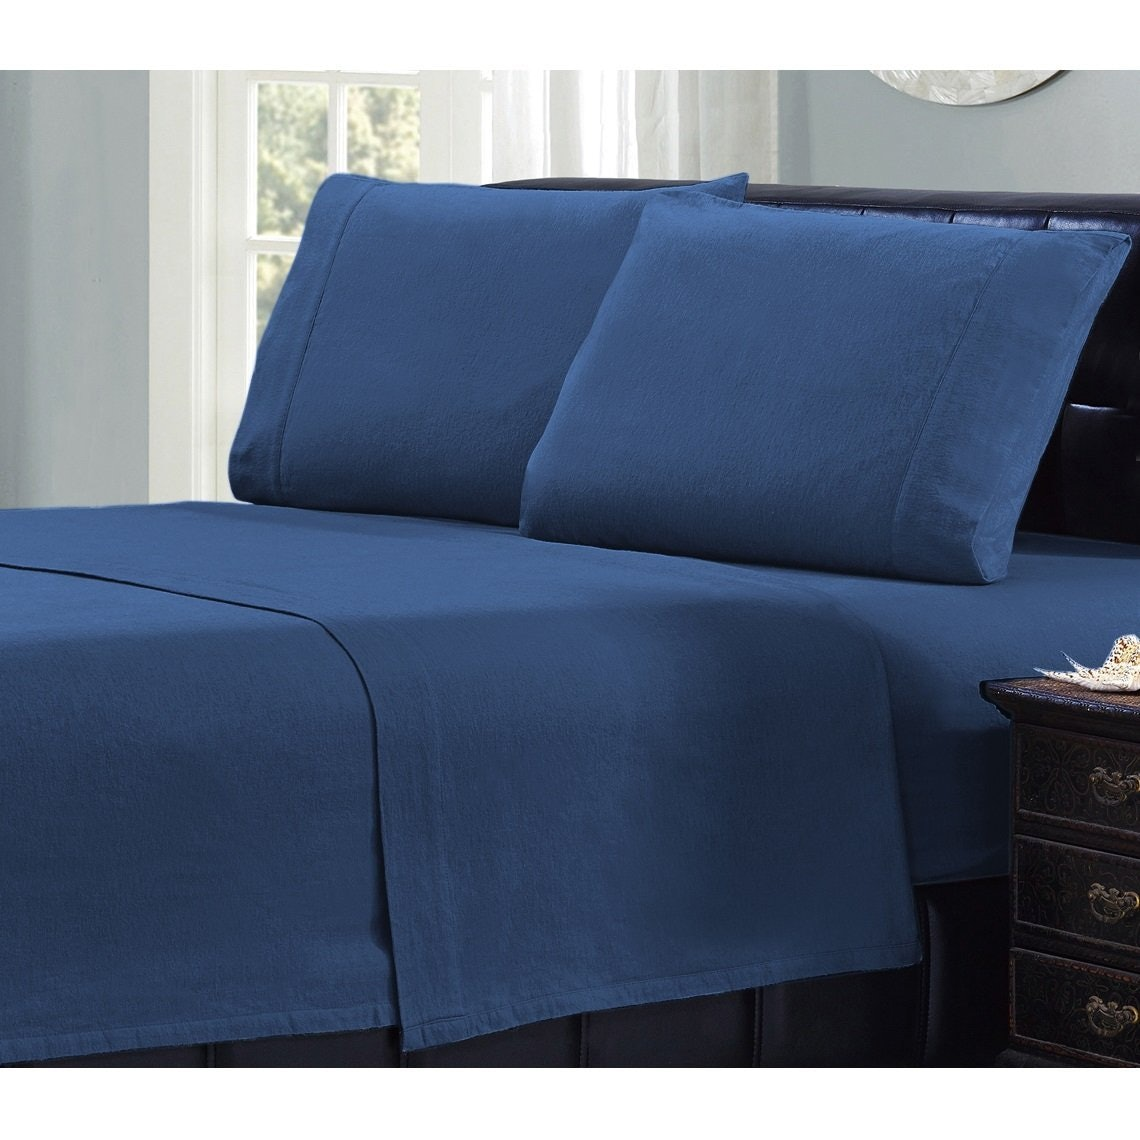 3an Affordable Set Of 'durable' Flannel Sheets That Fit All Mattress Sizes: Plum Microfleece Sheets At Alzheimers-prions.com